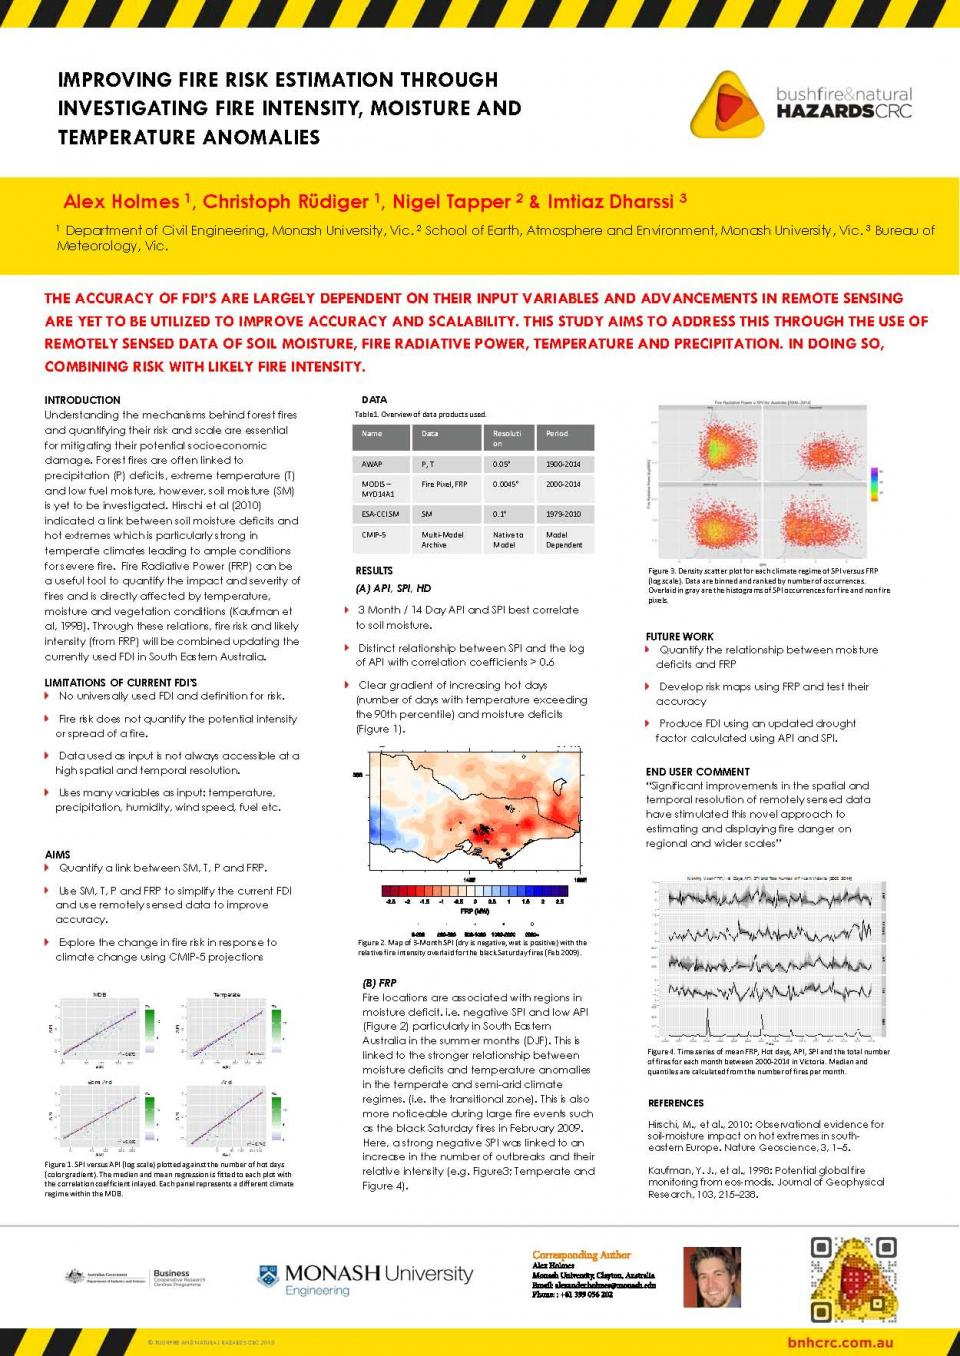 Improving Fire Risk Estimation through Investigating Fire Intensity, Moisture and Temperature Anomalies